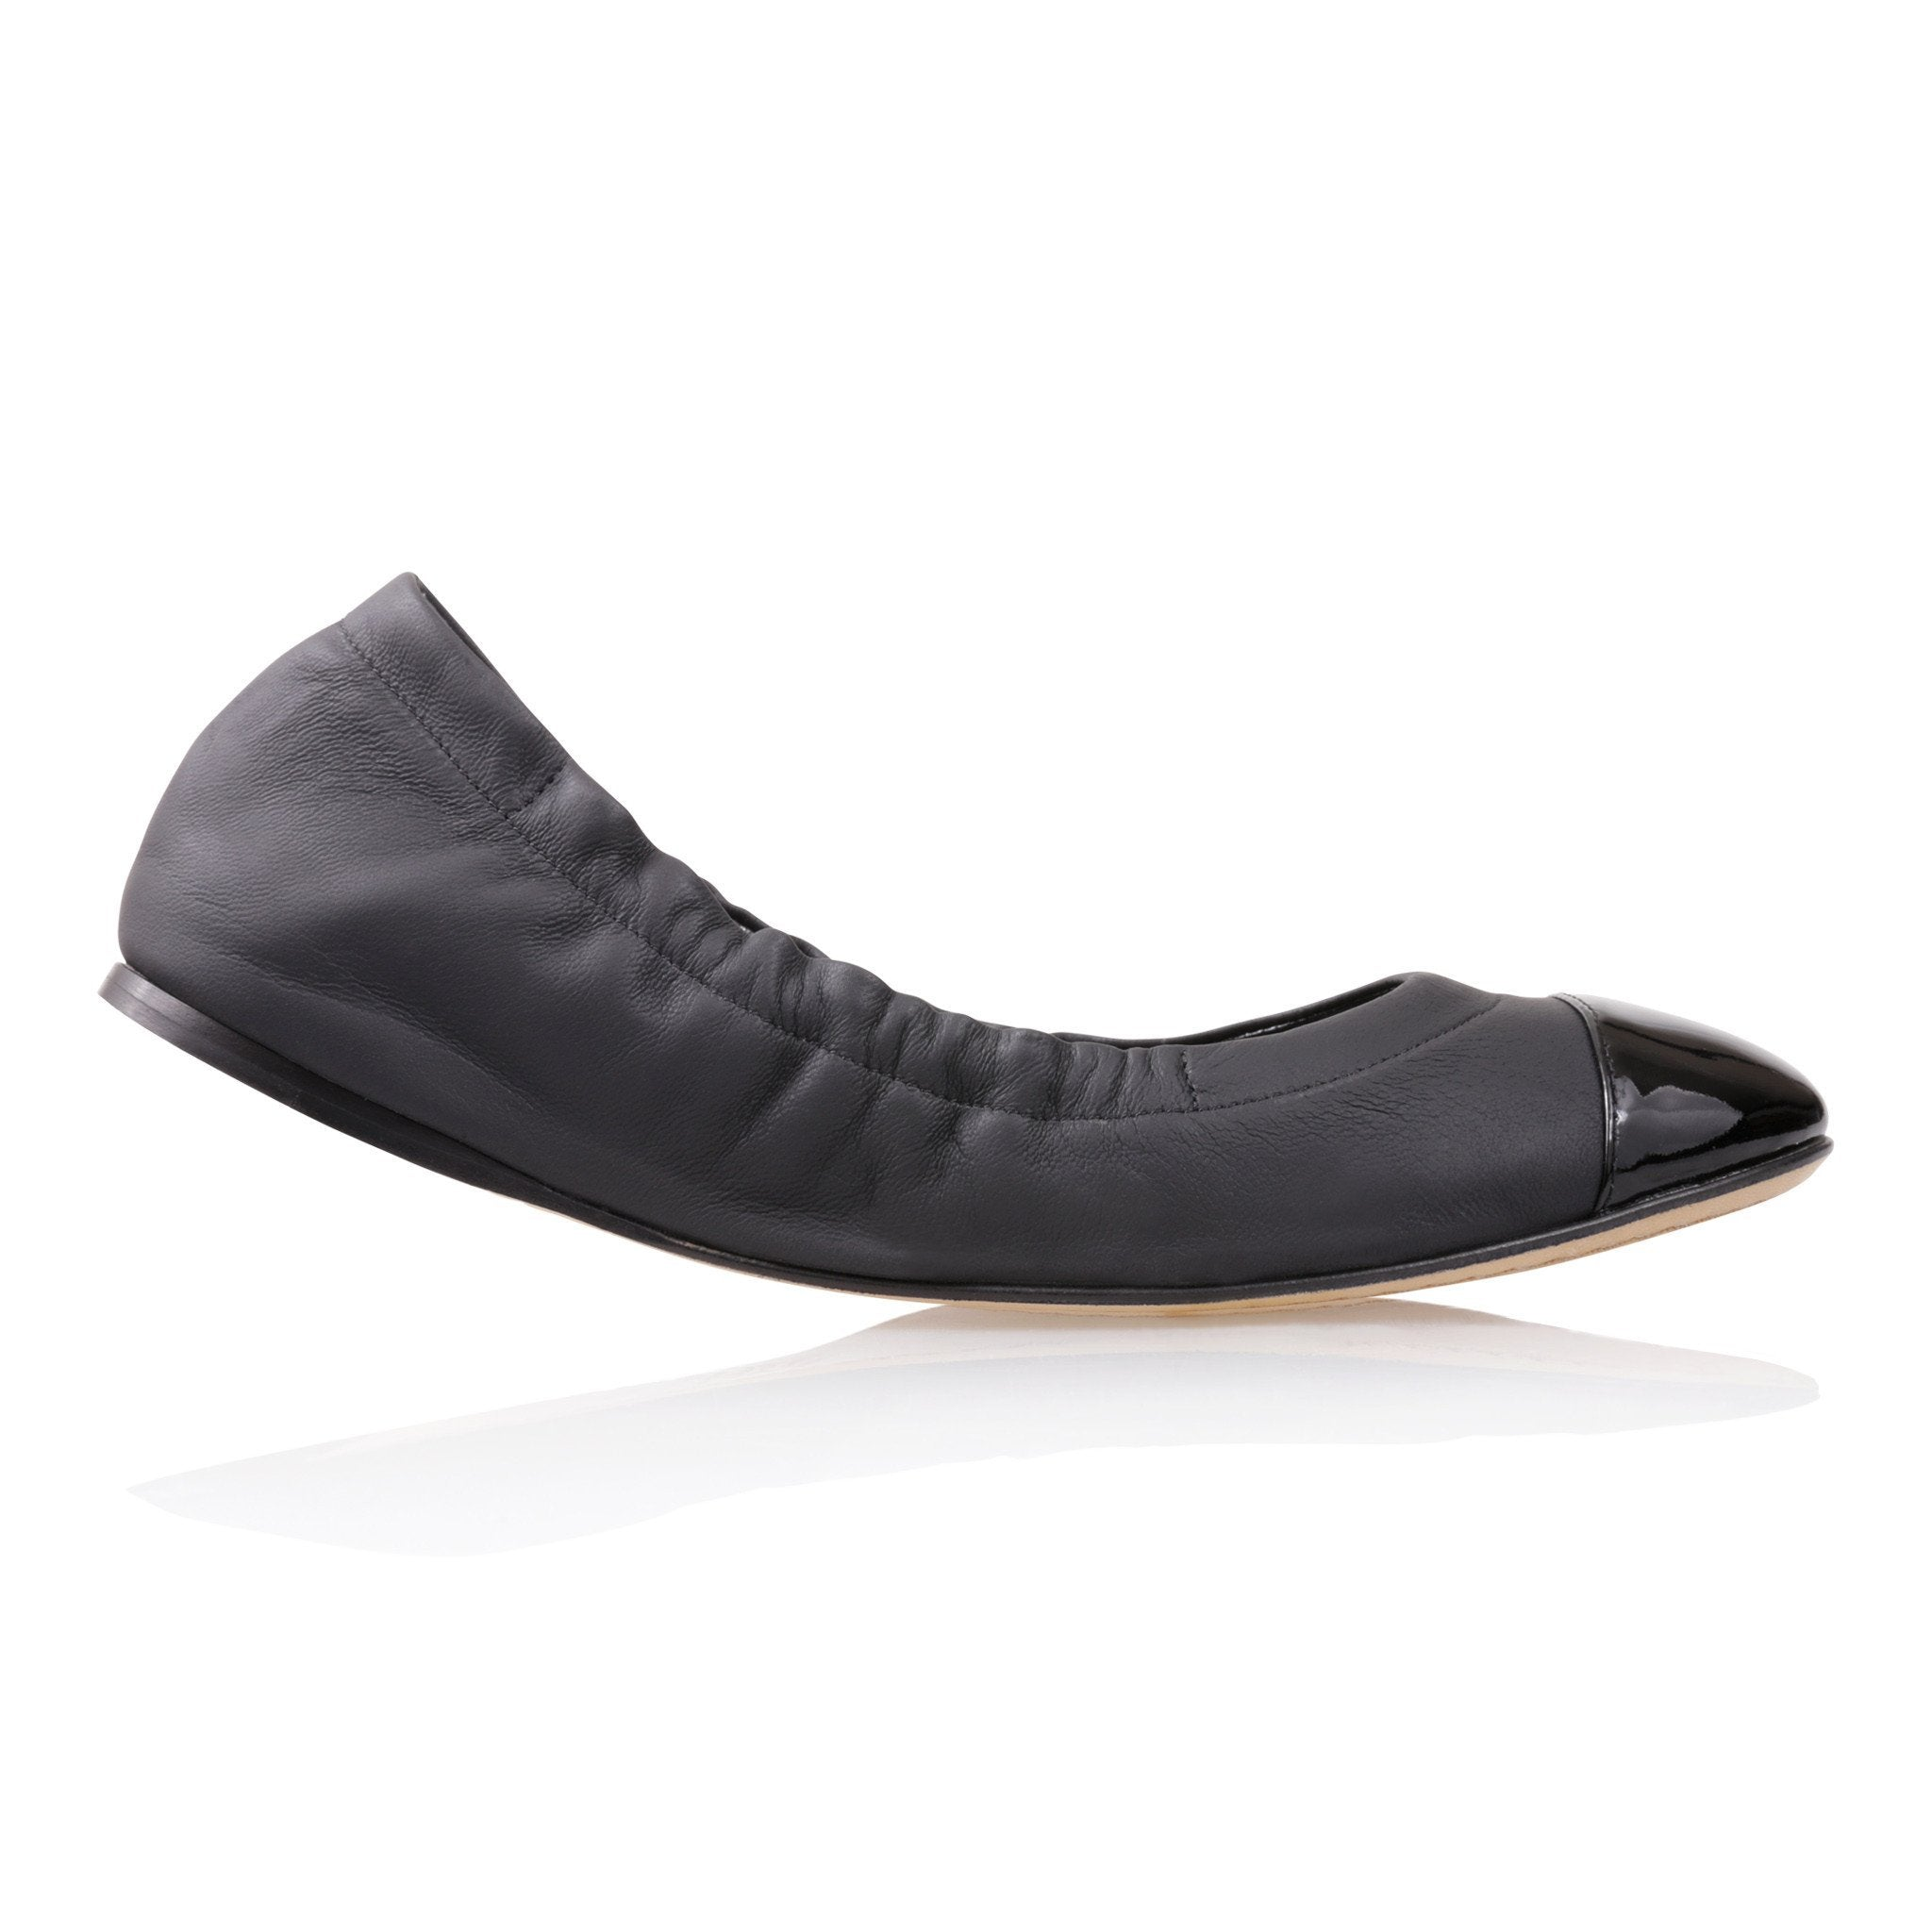 PORTOFINO - Nappa Nero + Patent, VIAJIYU - Women's Hand Made Sustainable Luxury Shoes. Made in Italy. Made to Order.